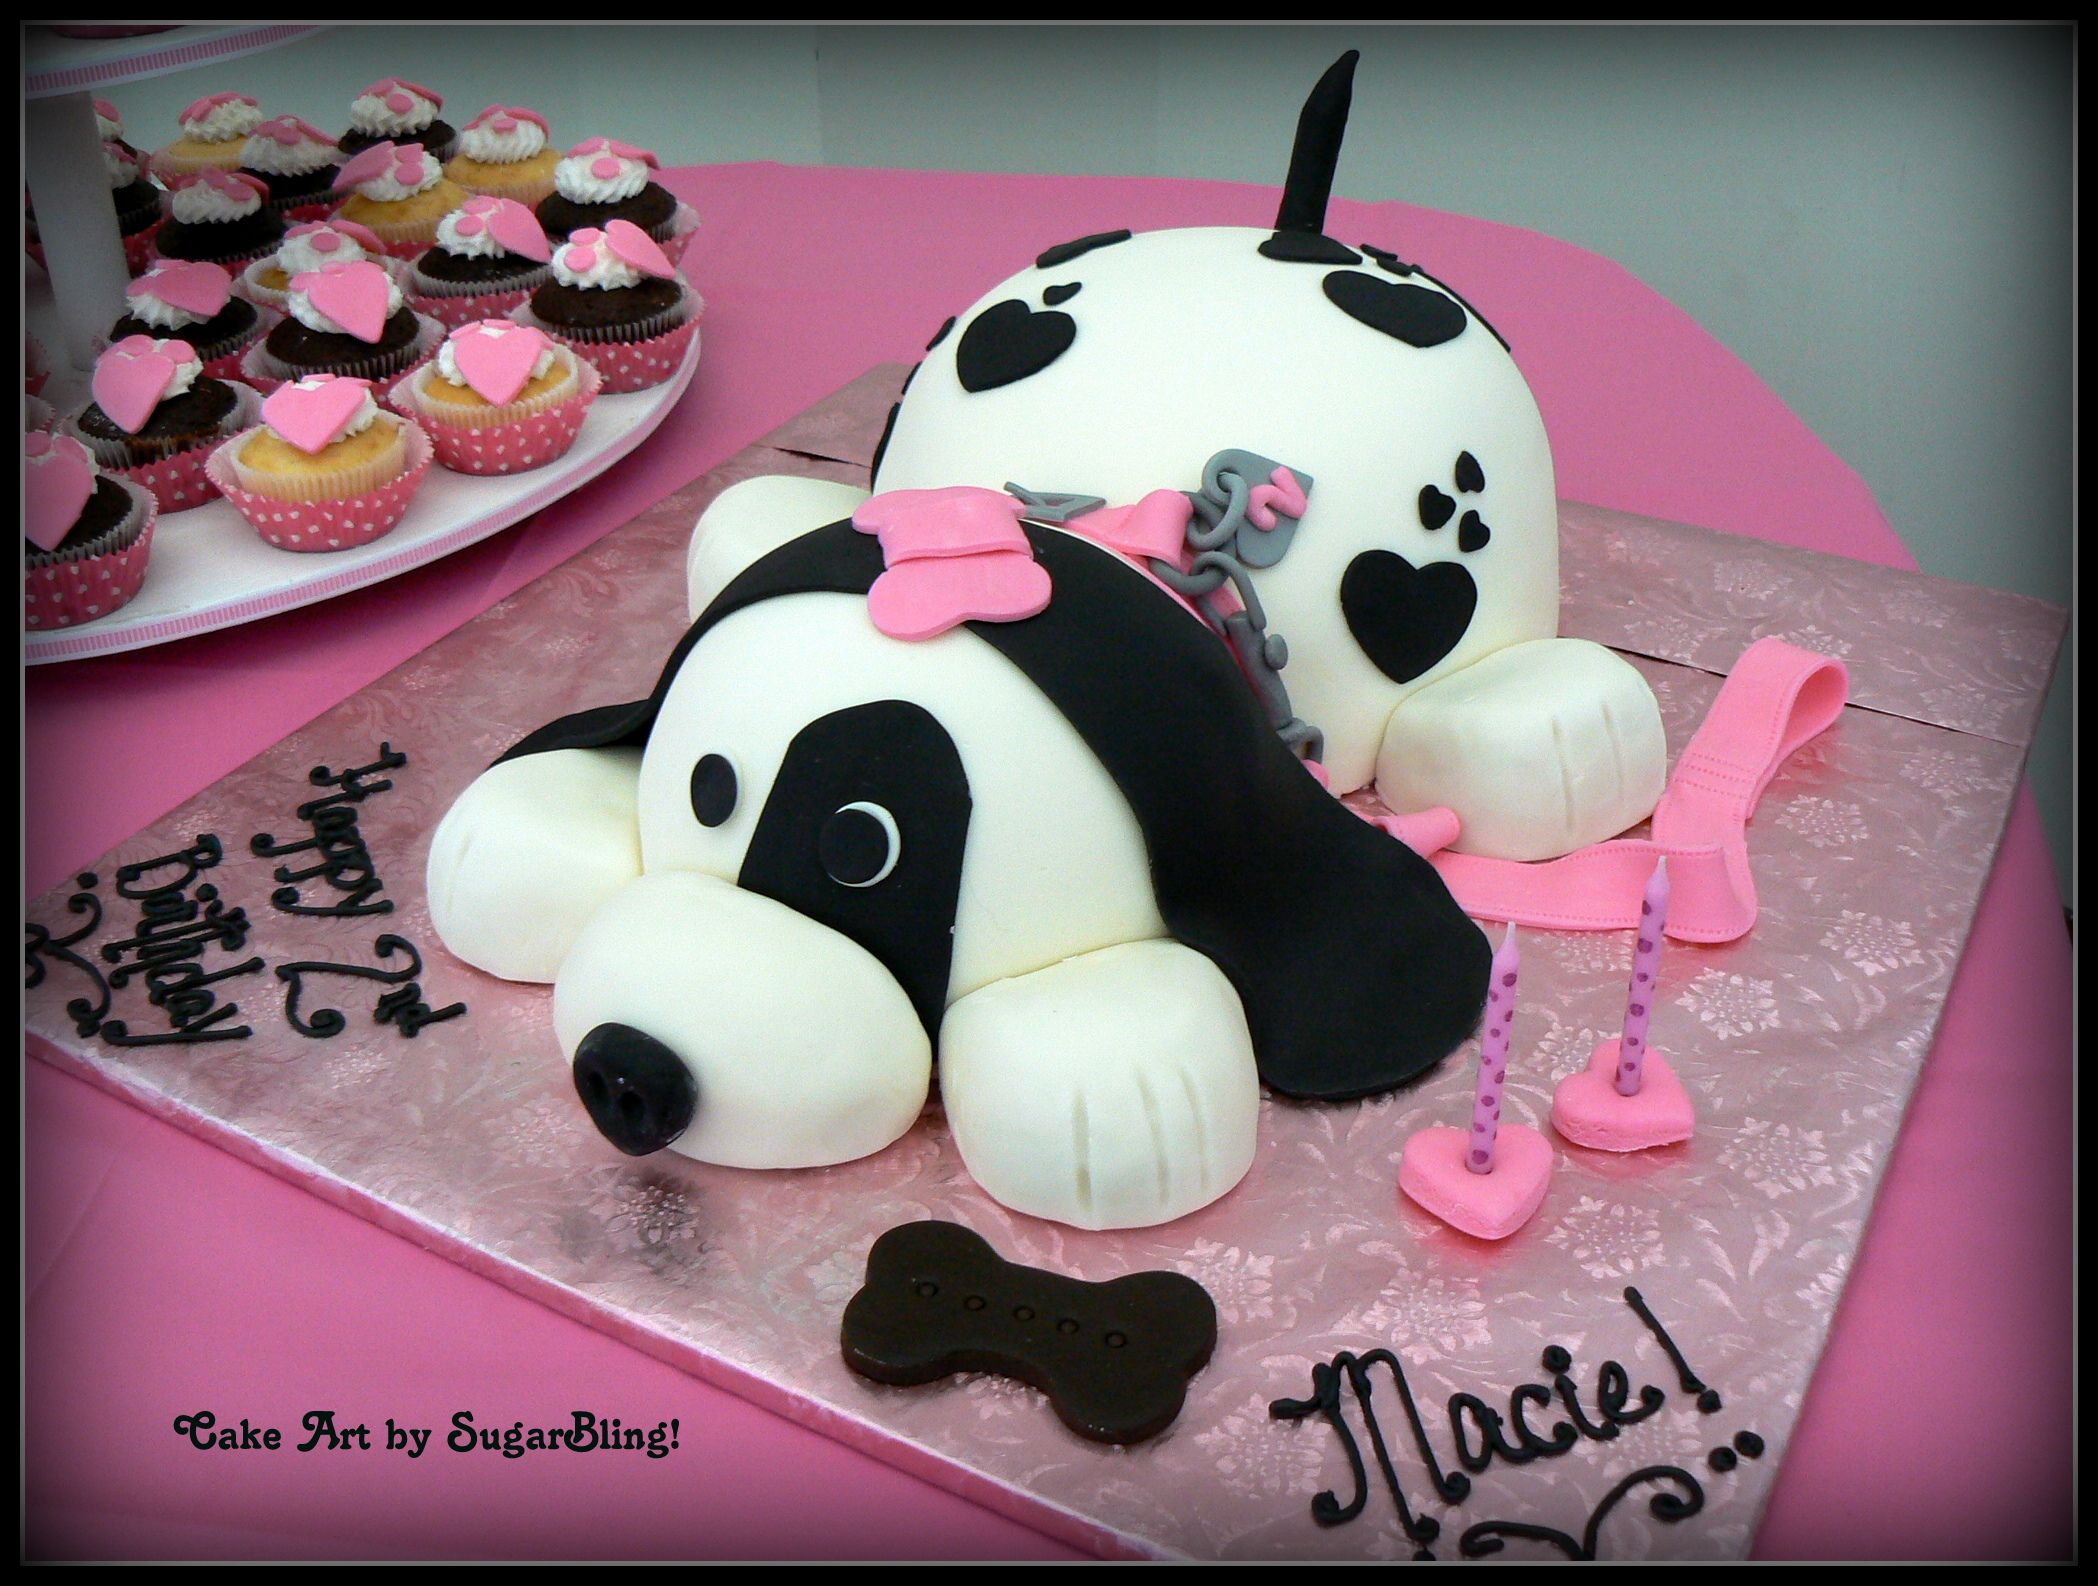 Macieus puppy cake this is a cake that is frosted in buttercream